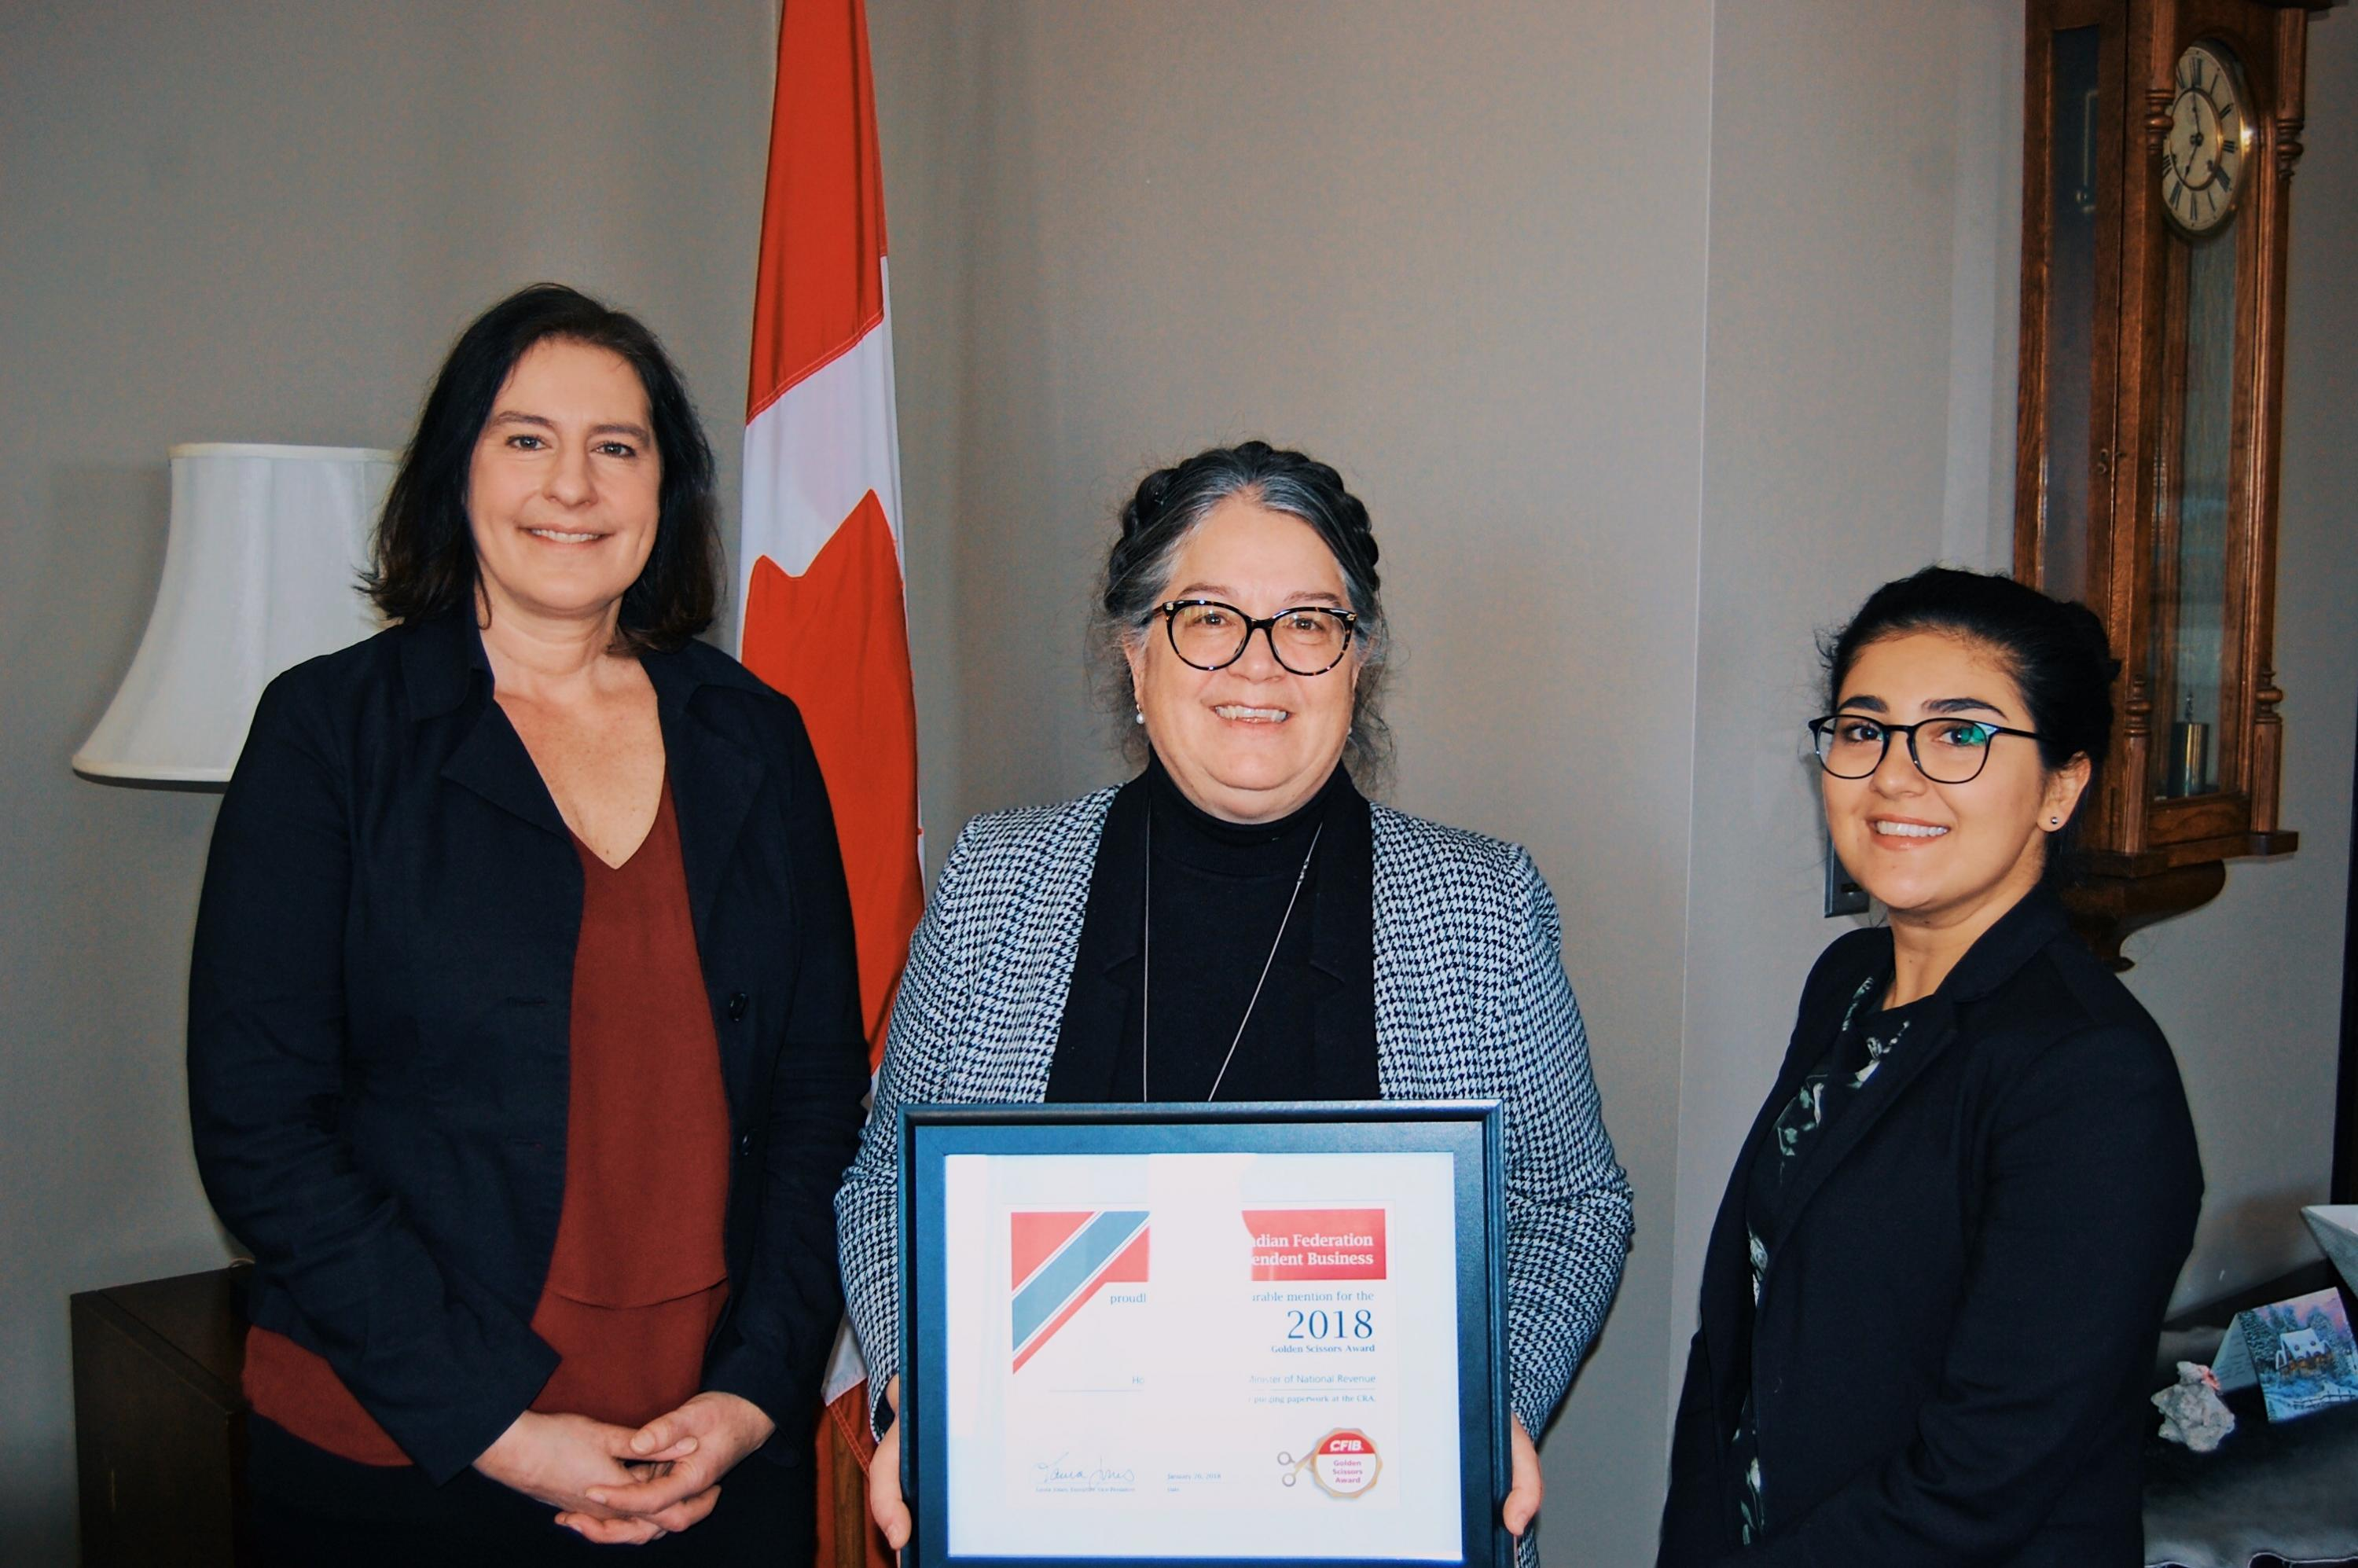 Corrine Pohlman, Ashley Ziai and Minister LeBouthiller, GSA Fed 20180126